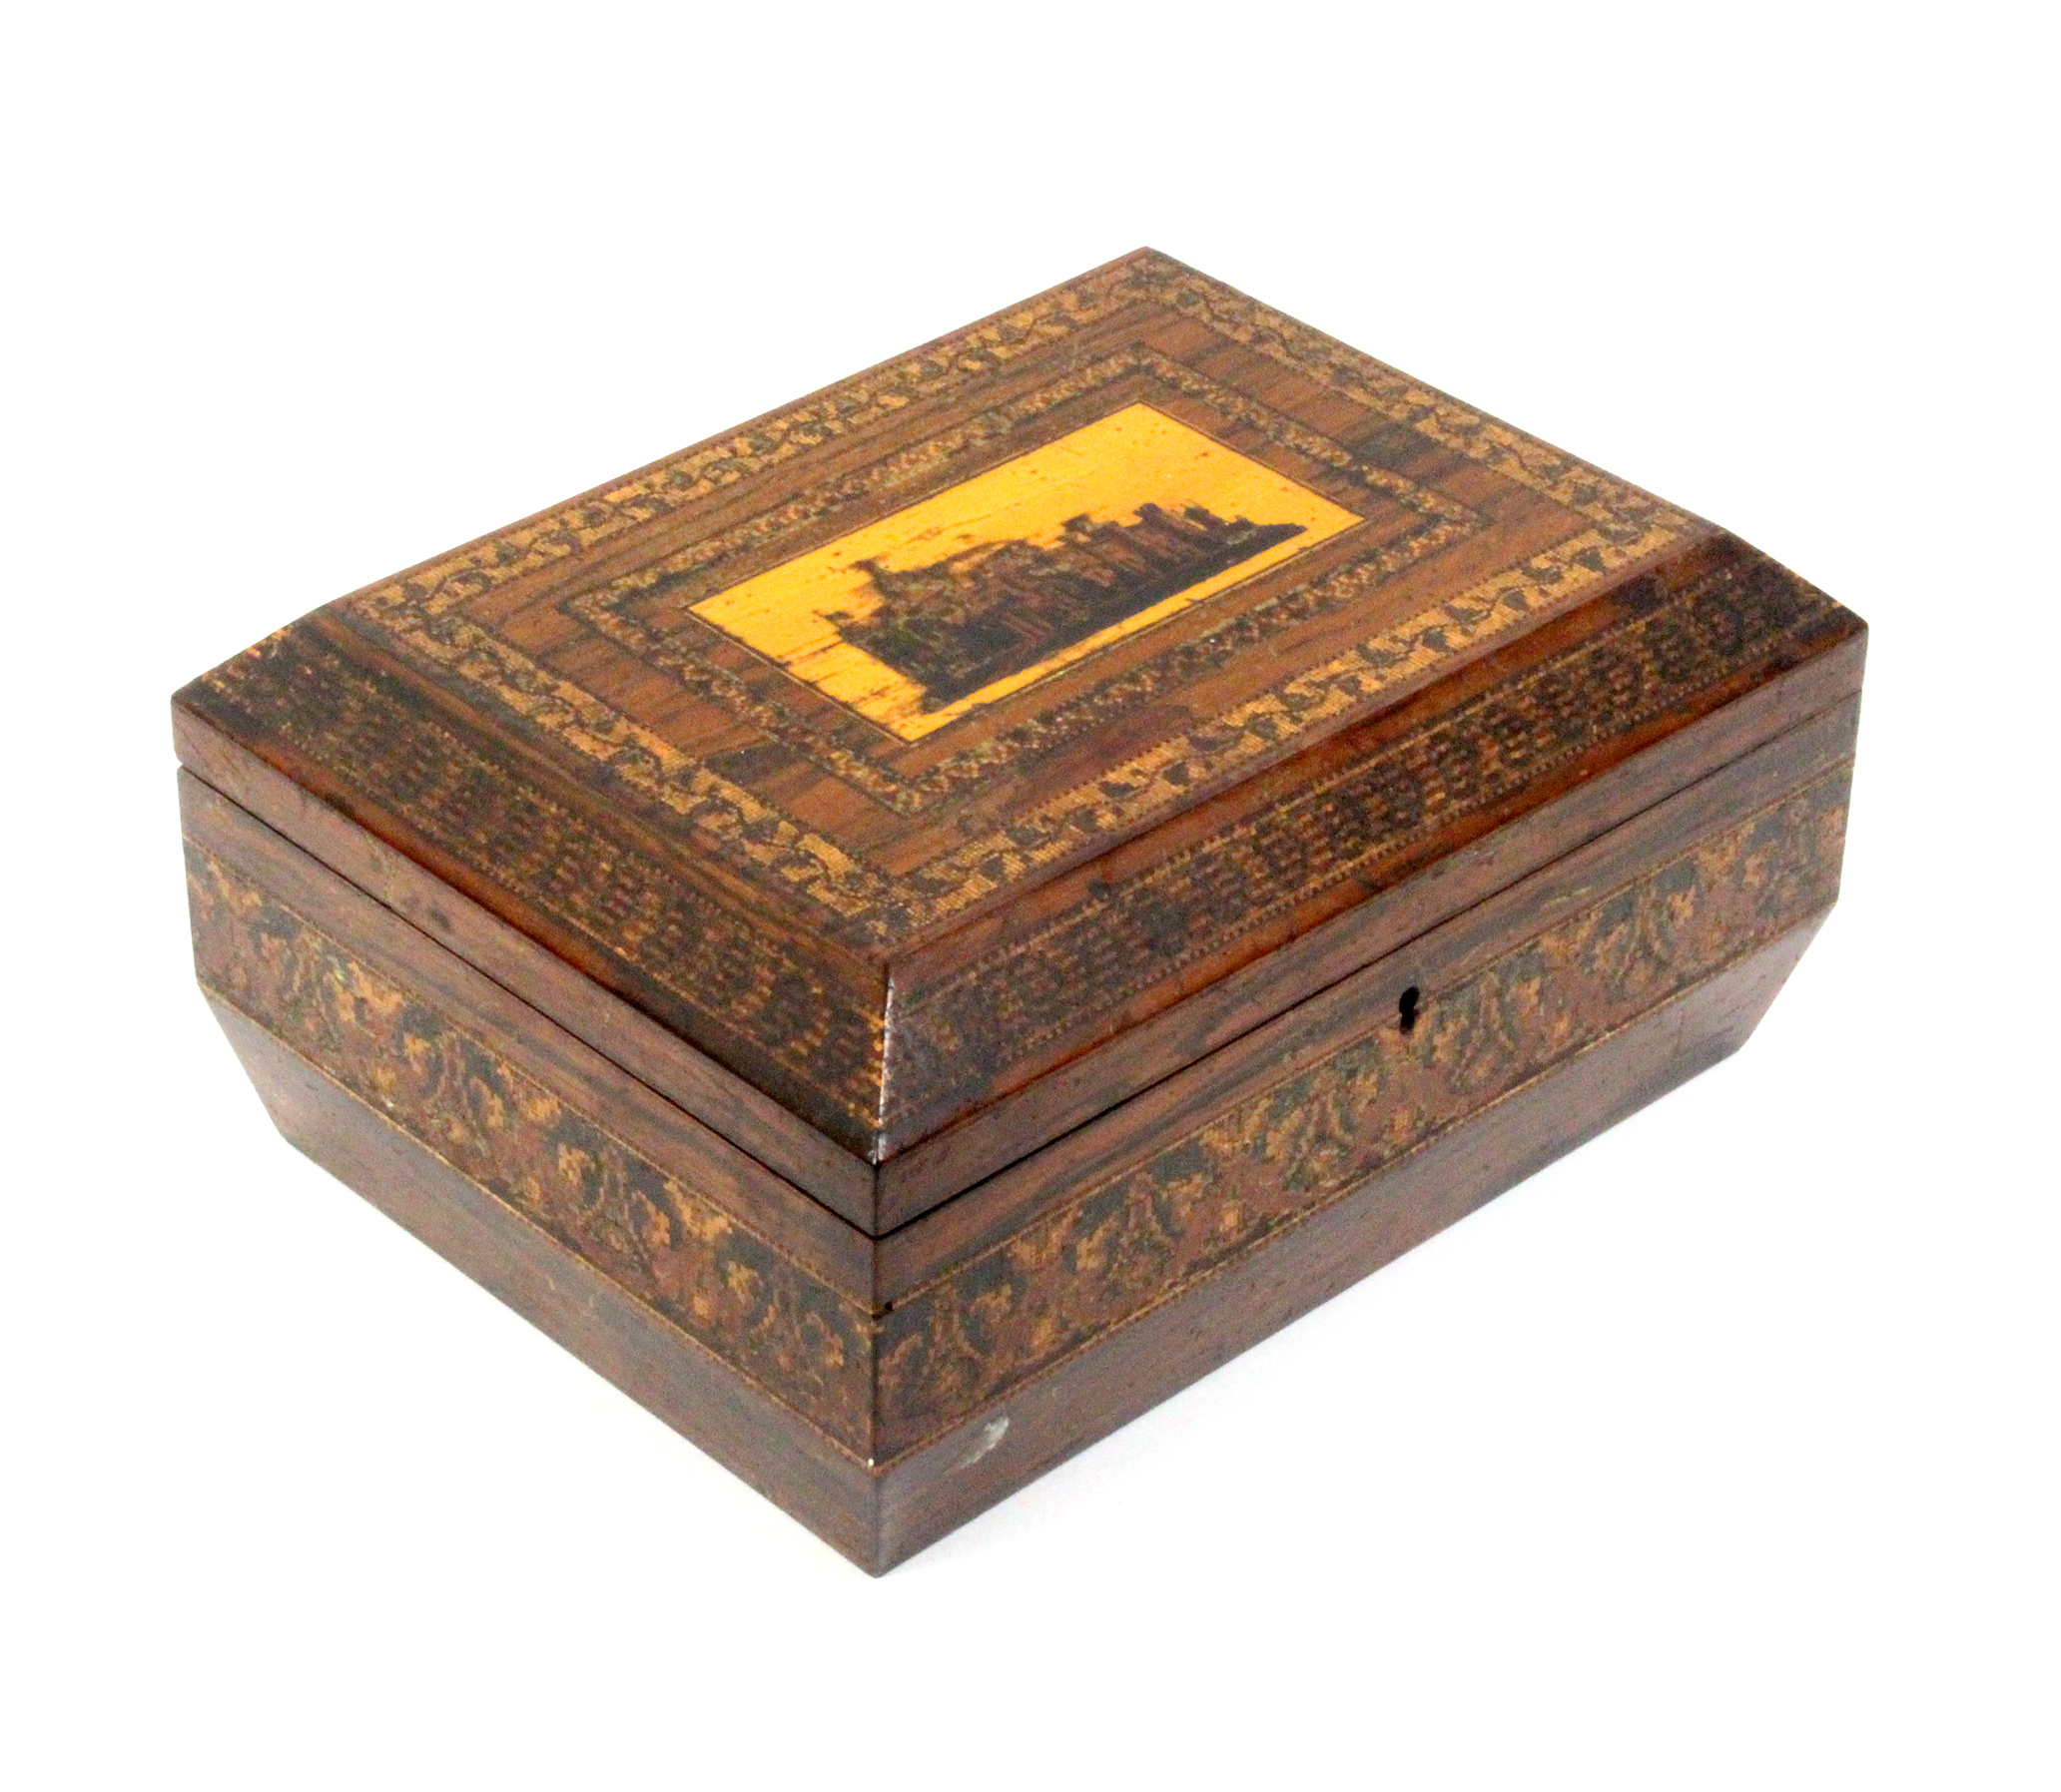 Lot 7 - A Tunbridge ware rosewood sewing box of sarcophagal form, the lid with a view of Eridge Castle